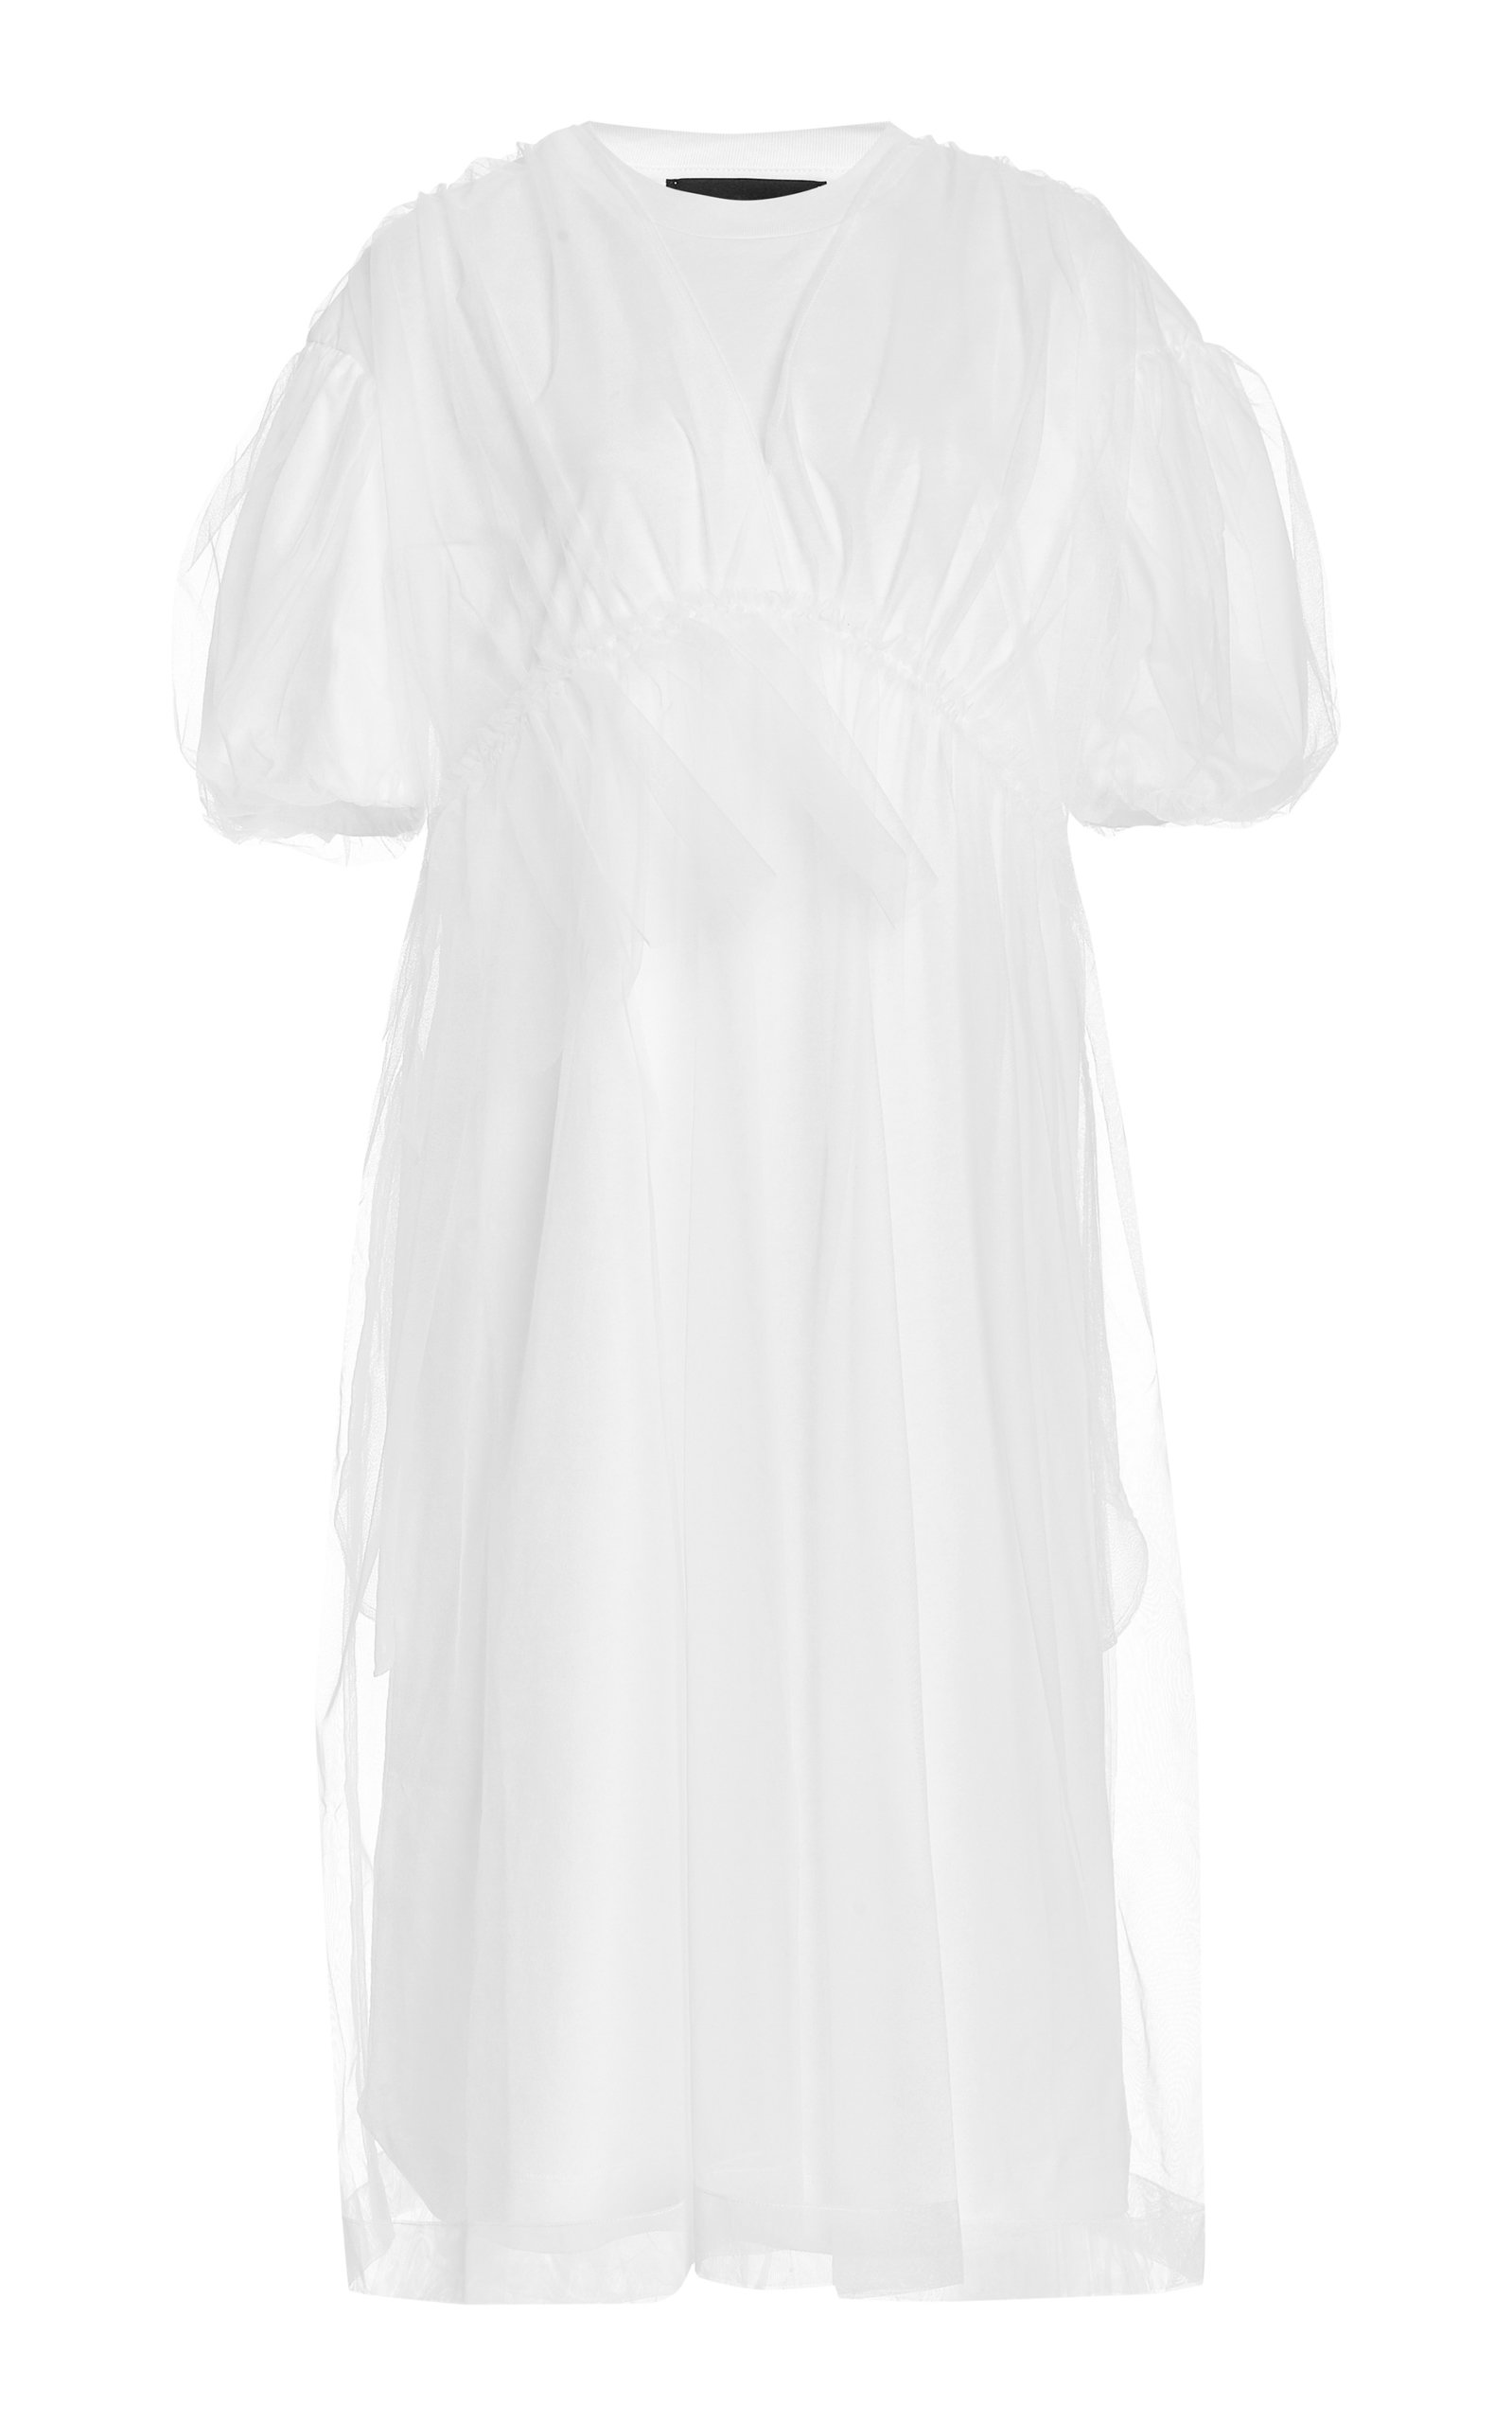 Buy Simone Rocha Tulle-Overlay Cotton Puff-Sleeve Babydoll T-Shirt Dress online, shop Simone Rocha at the best price